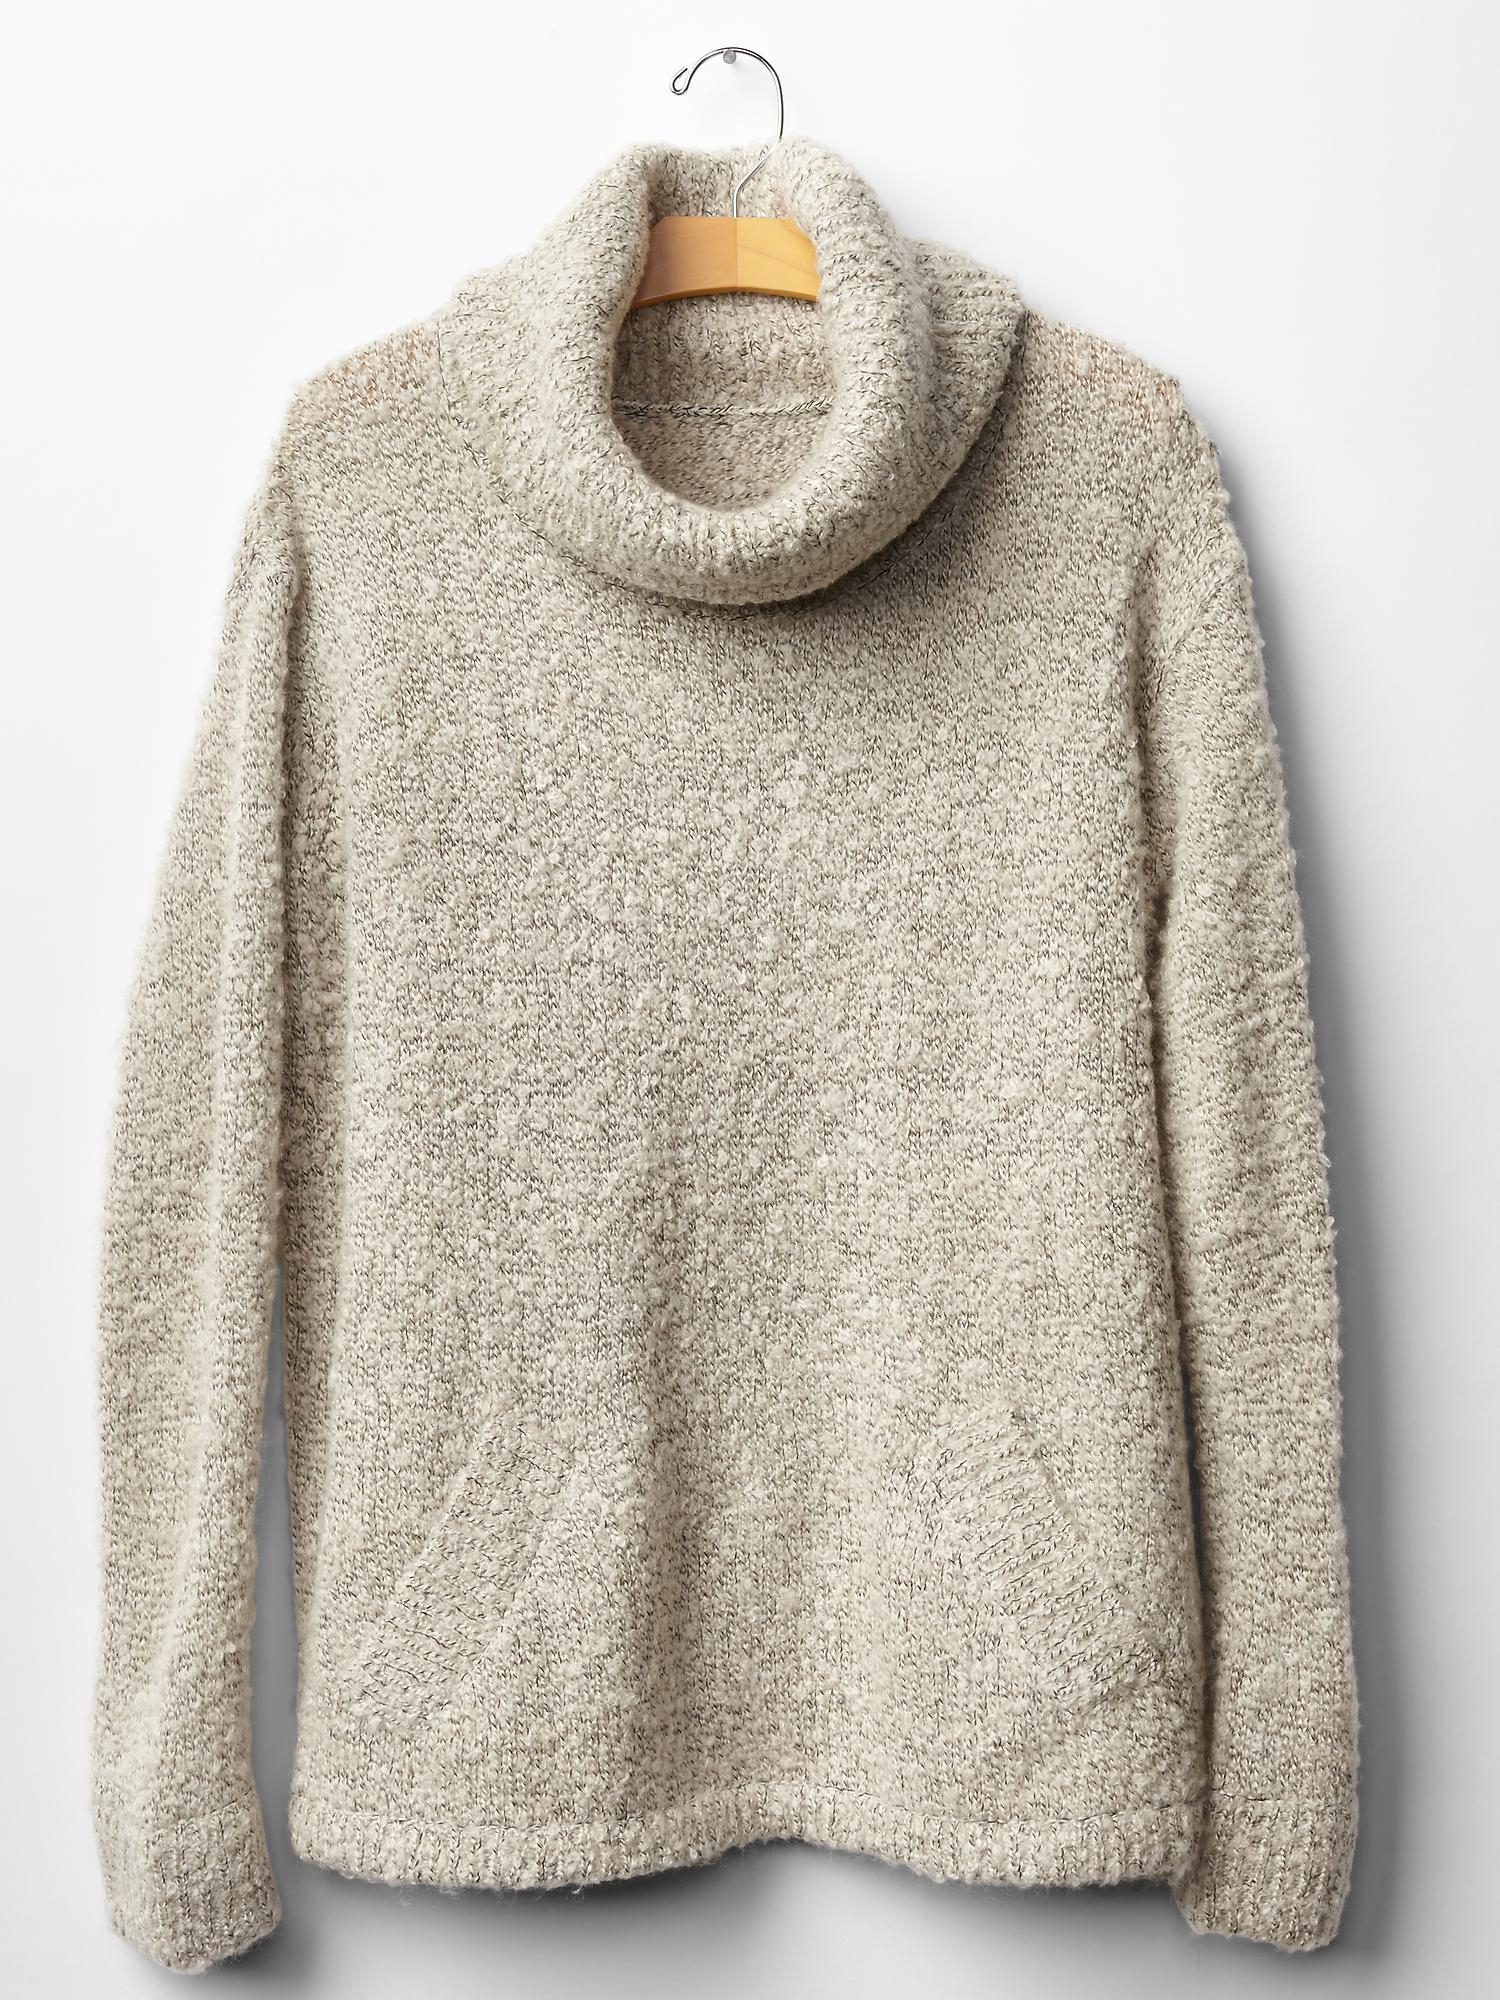 Gap Boucle Turtleneck Sweater In Oatmeal Heather Natural